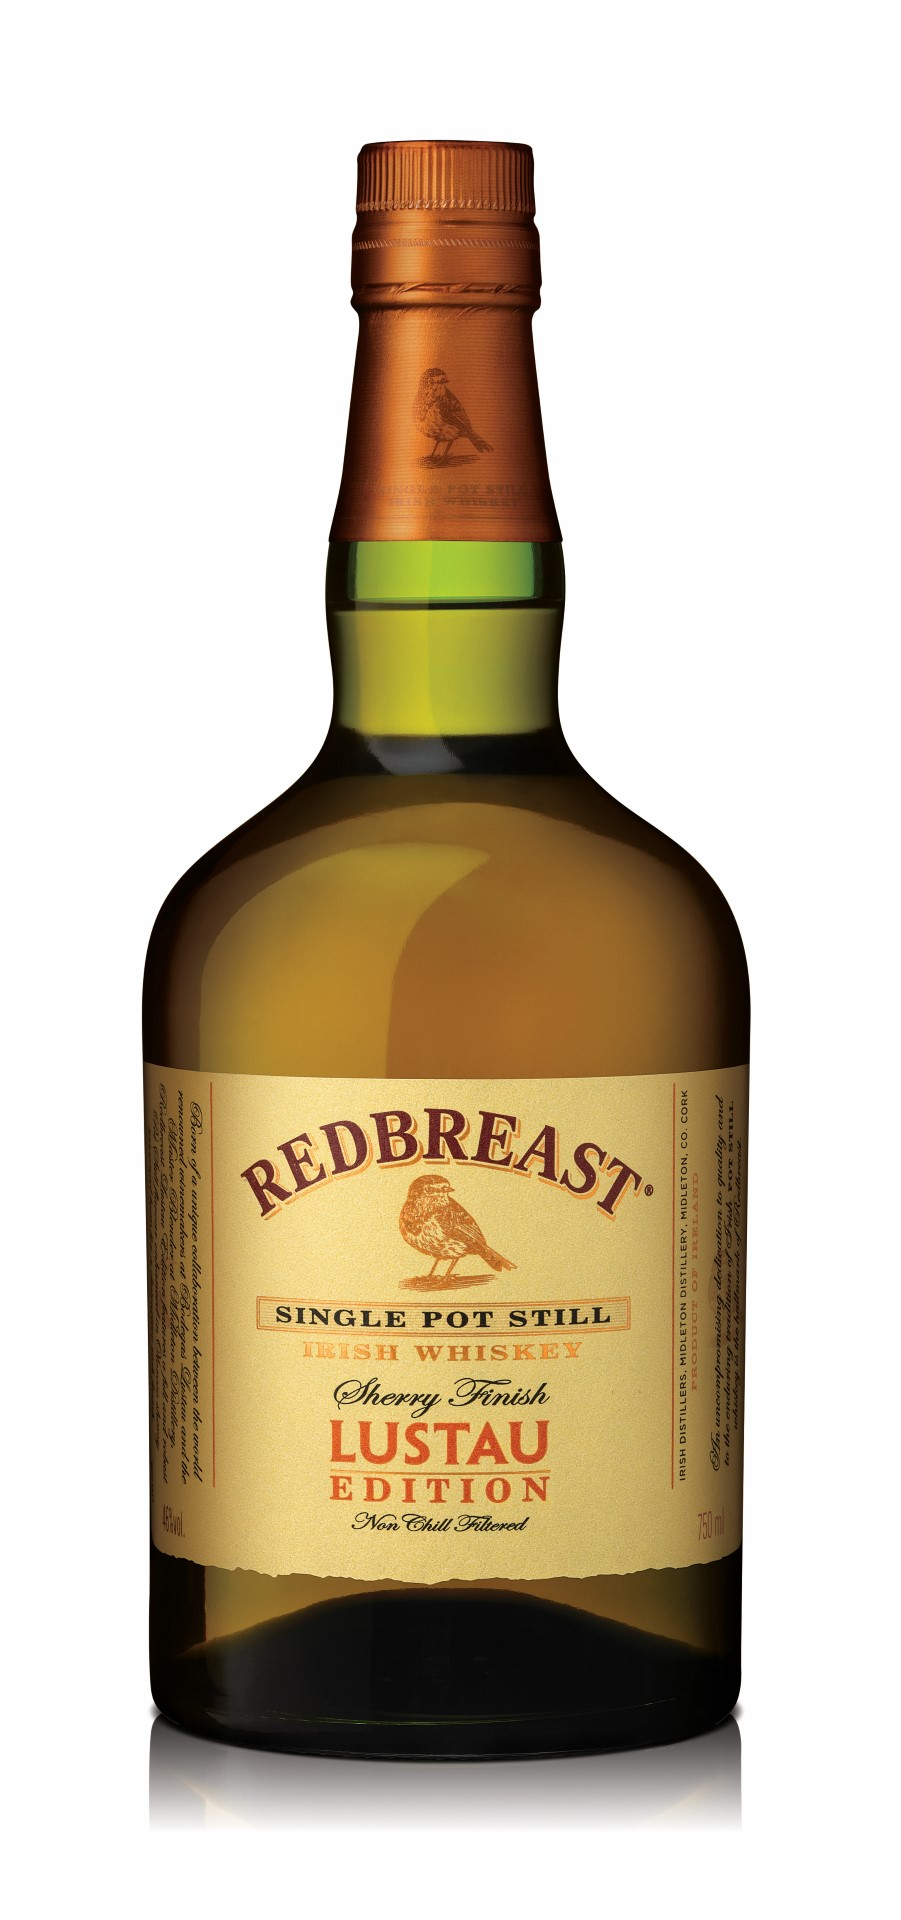 Redbreast Sherry Finish Lustau Edition Irish Whiskey